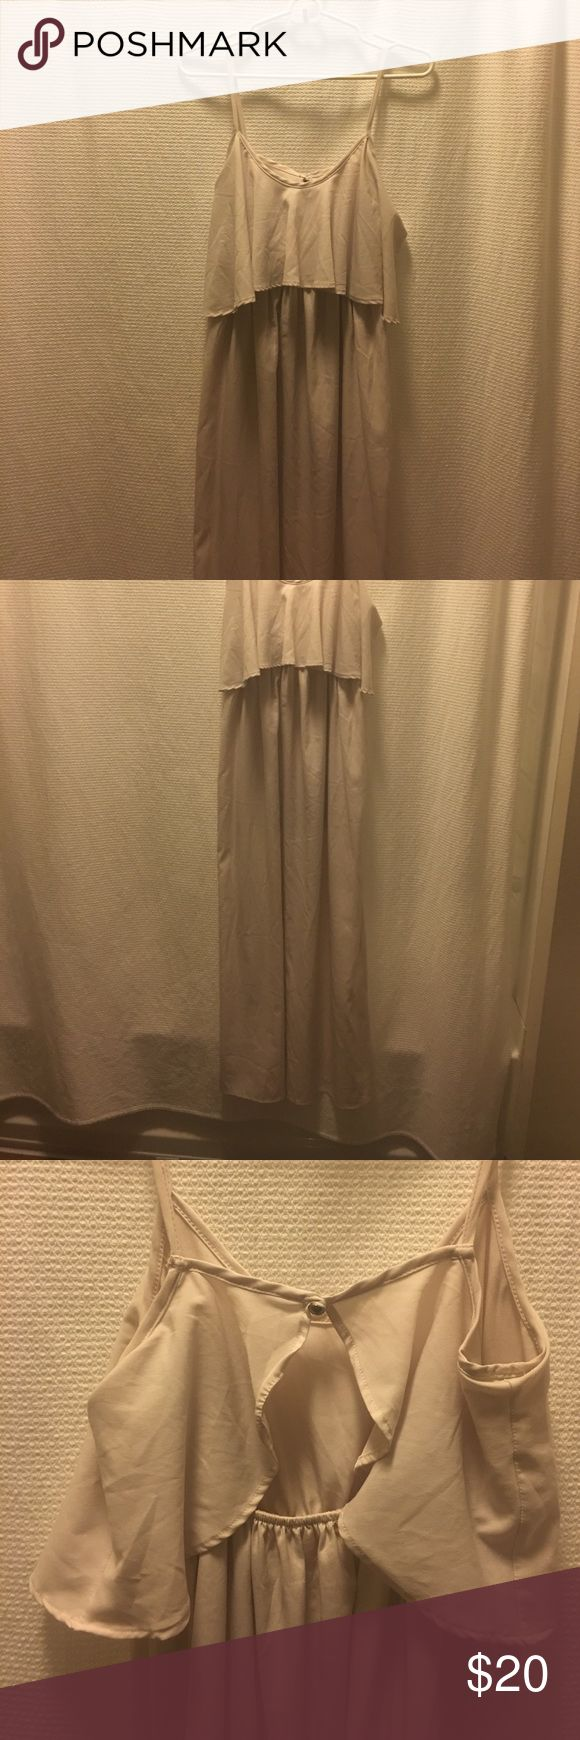 Cream Maxi Dress Boho Bride Ethereal maxi dress, cream, with key hole back. Thin half lining for the skirt part. You will probably want to add a slip or something. Unsized but purchased from boutique as medium. Dresses Maxi